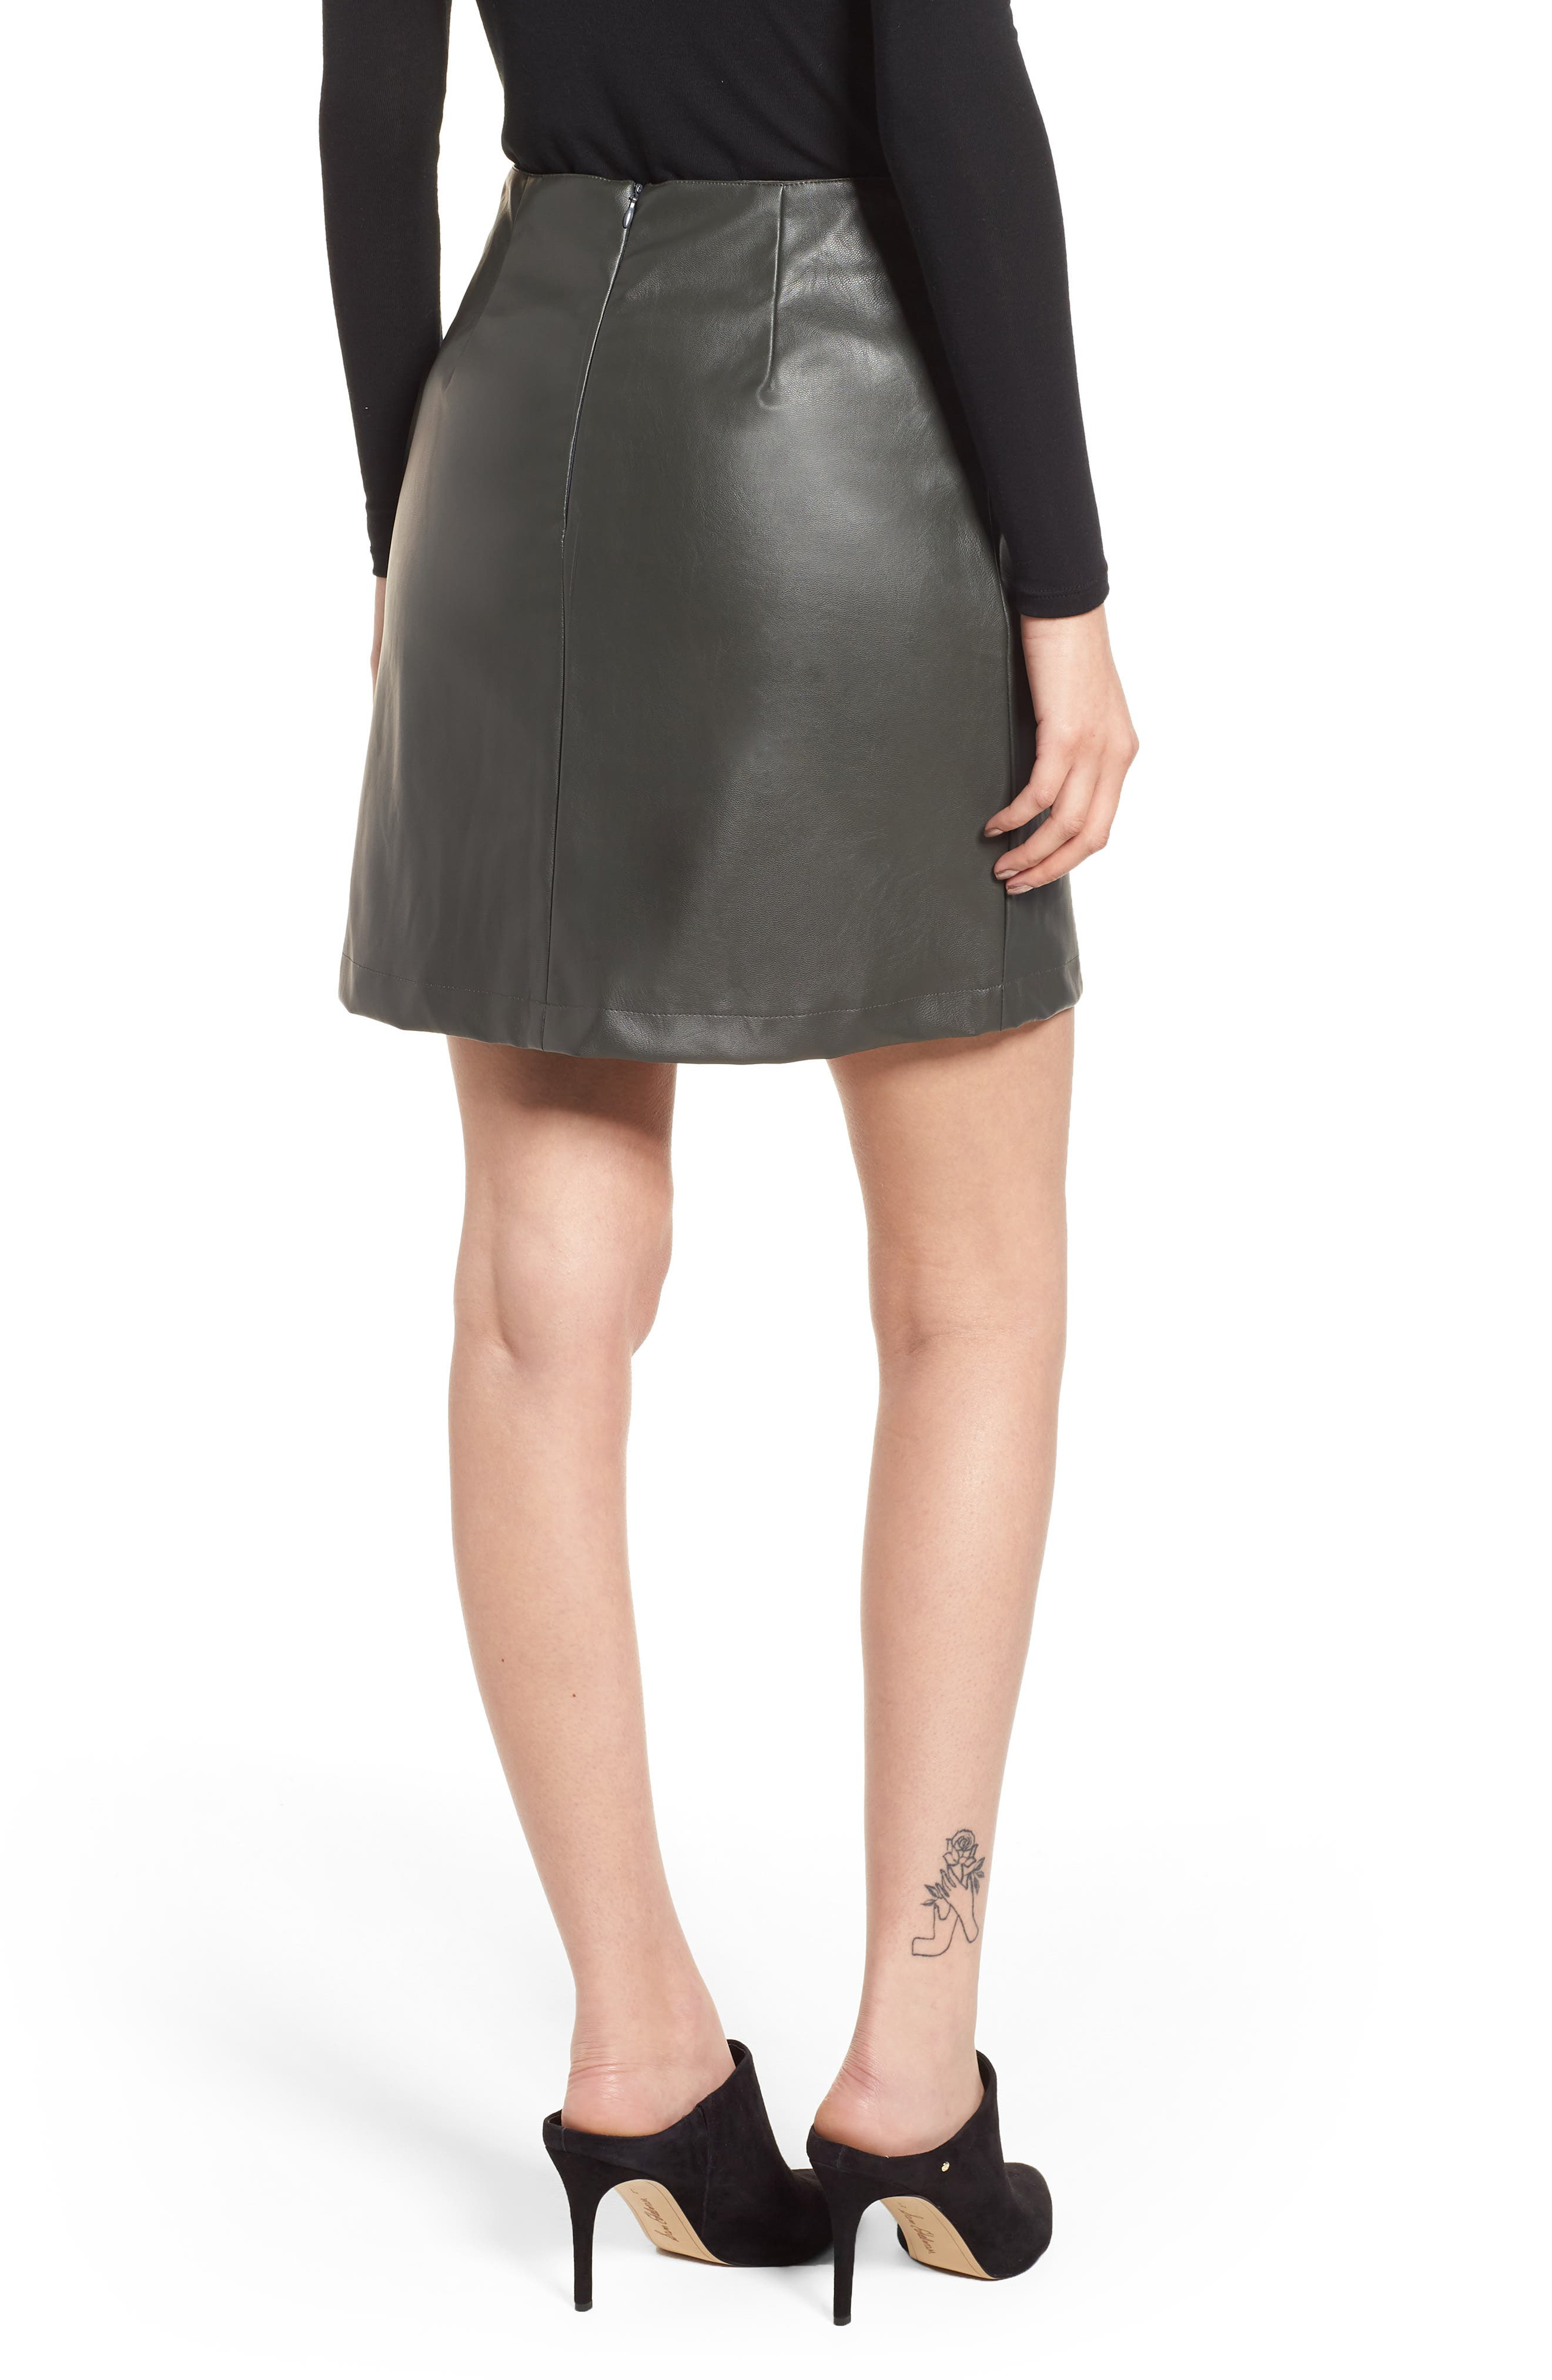 Bishop + Young A-Line Faux Leather Miniskirt,                             Alternate thumbnail 2, color,                             333